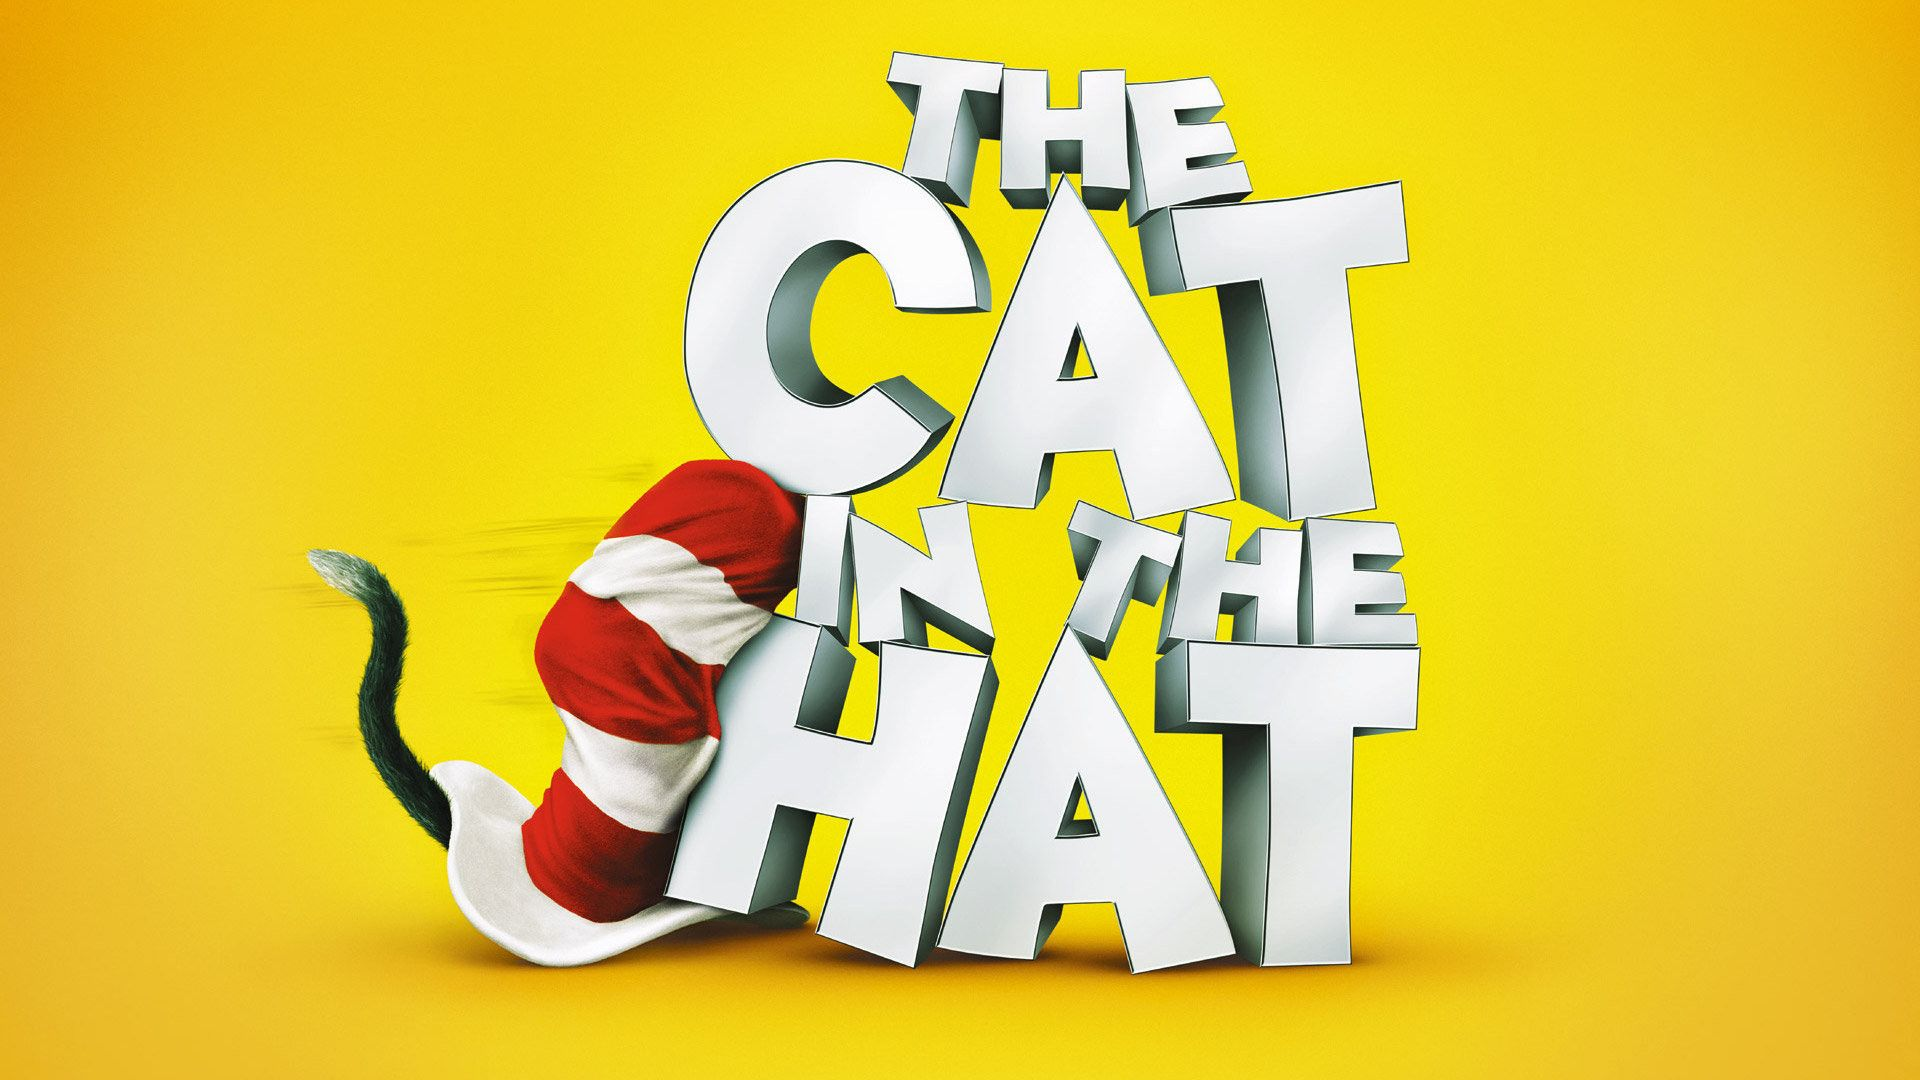 Cat In The Hat Wallpapers Top Free Cat In The Hat Backgrounds